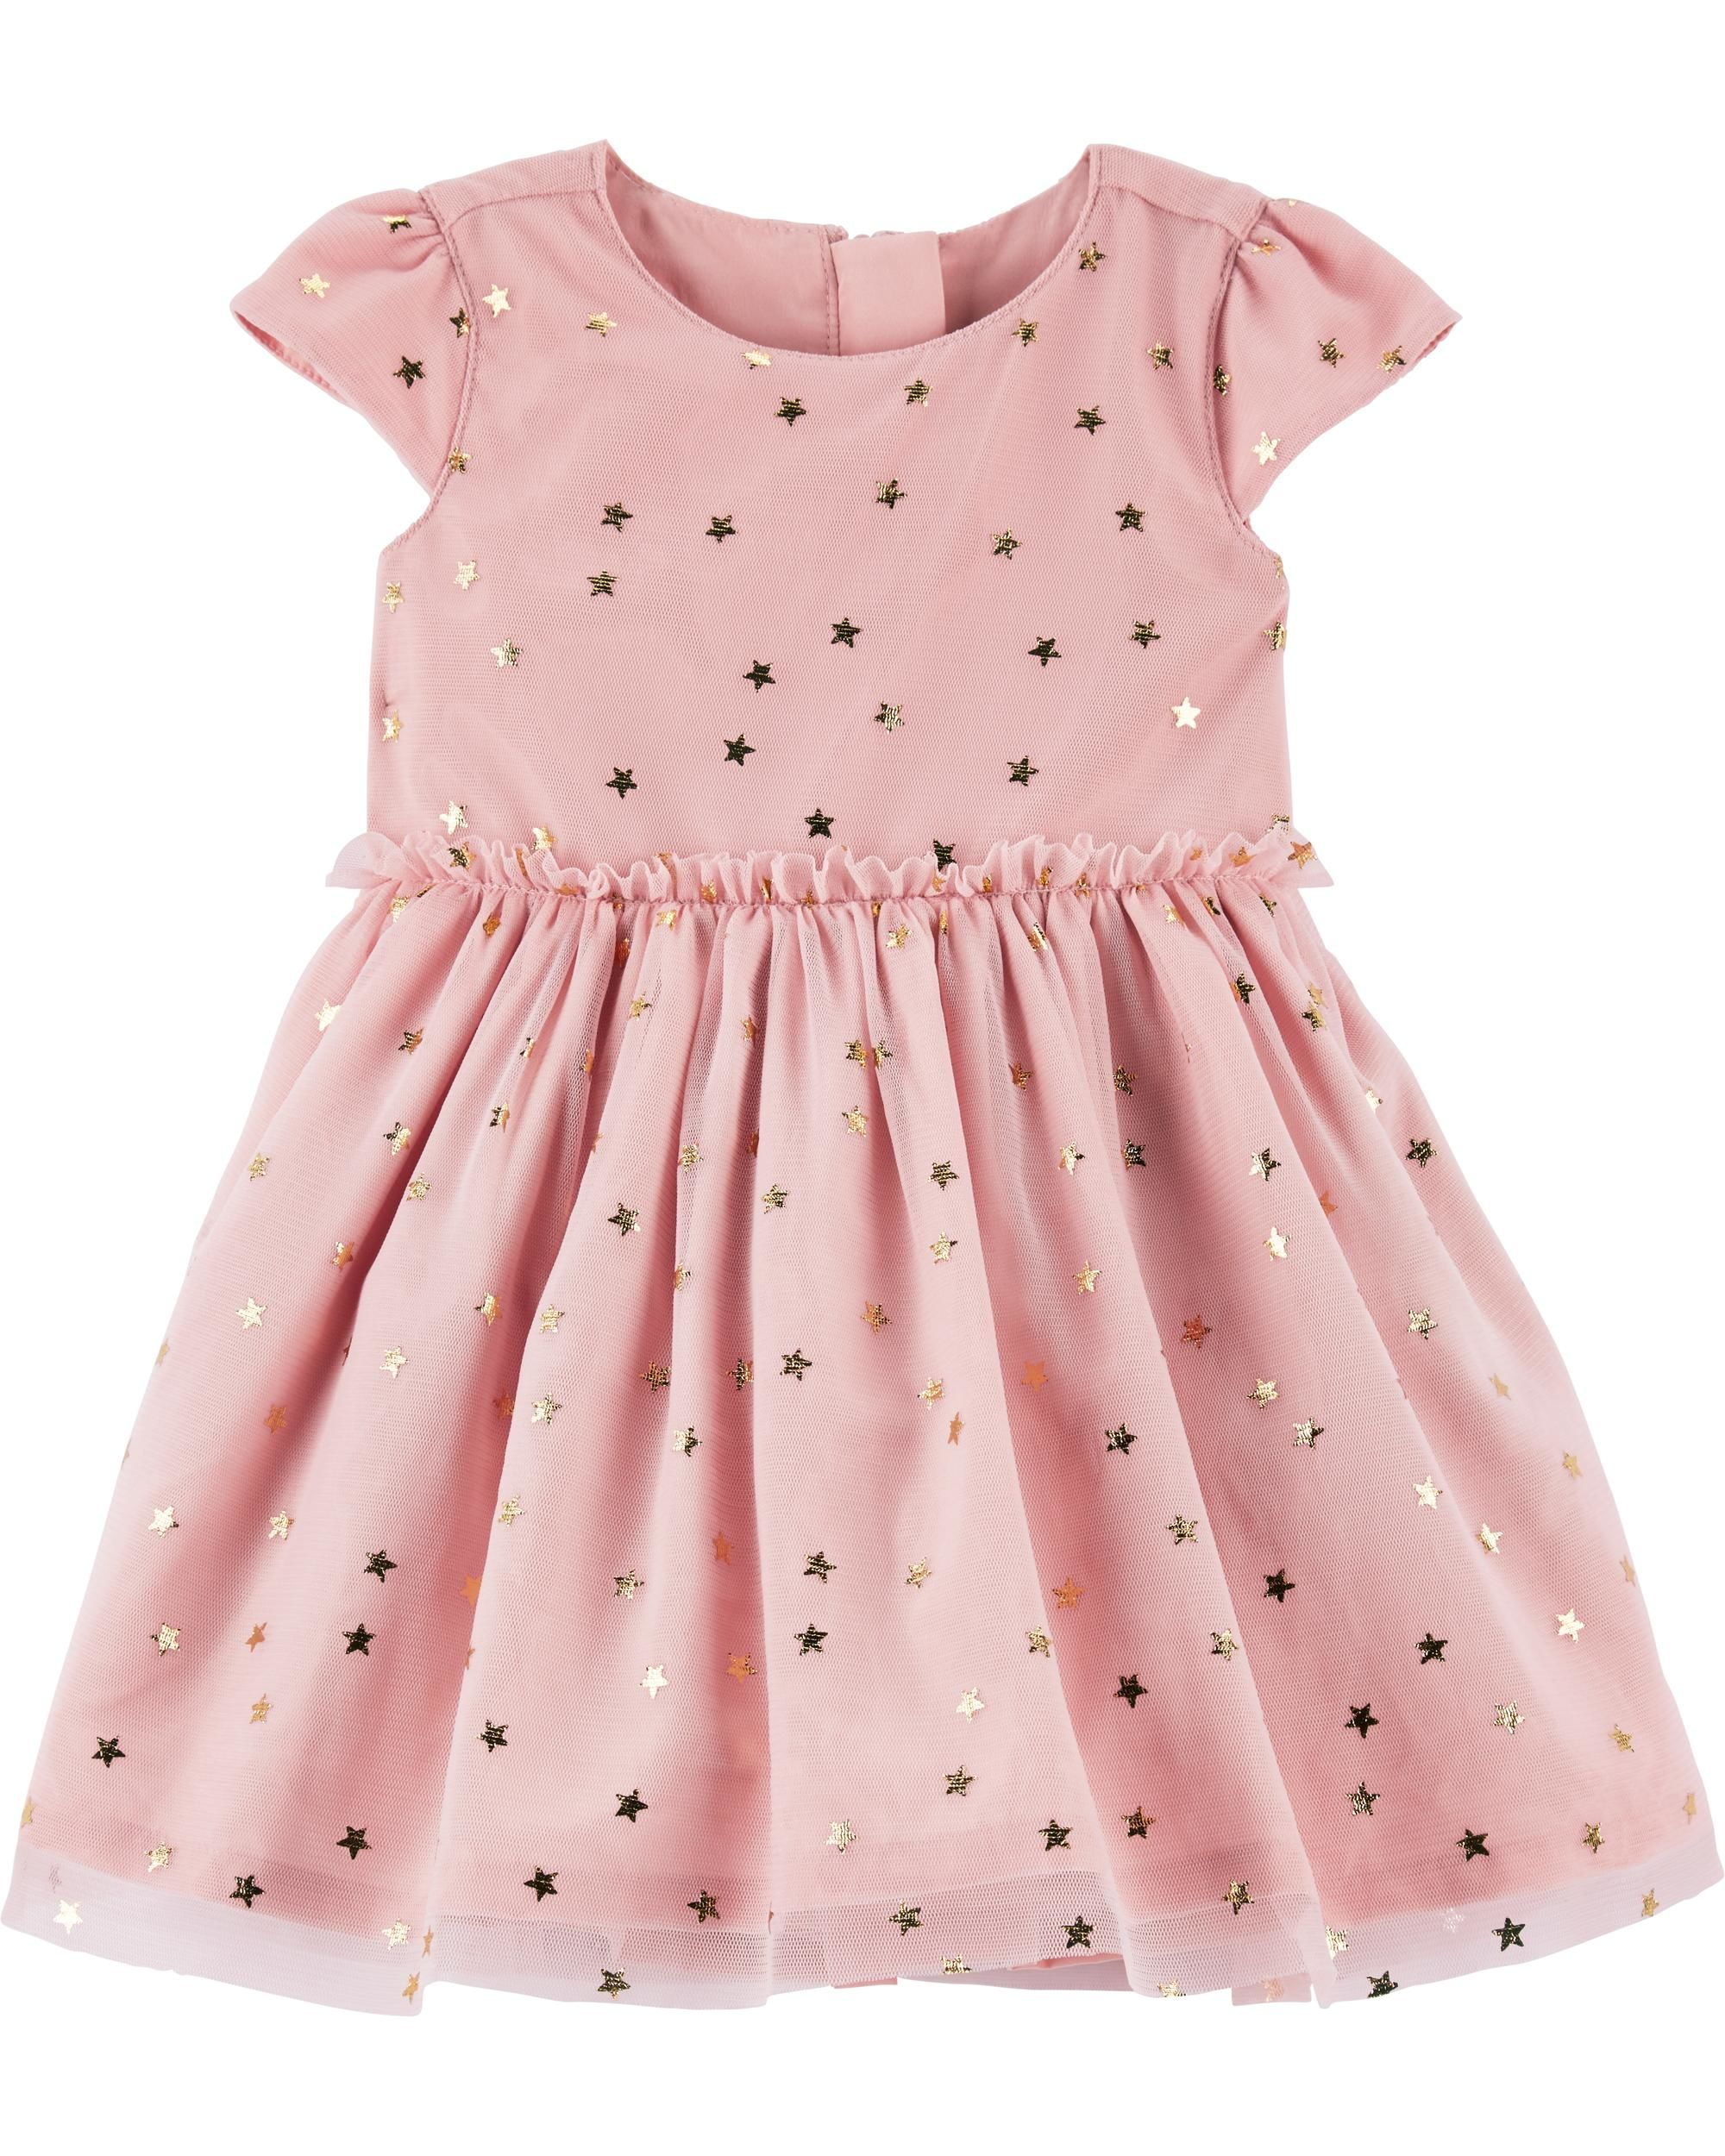 7a32fdfca Star Tulle Holiday Dress | Wedding Ideas | Baby girl dresses, Pink ...